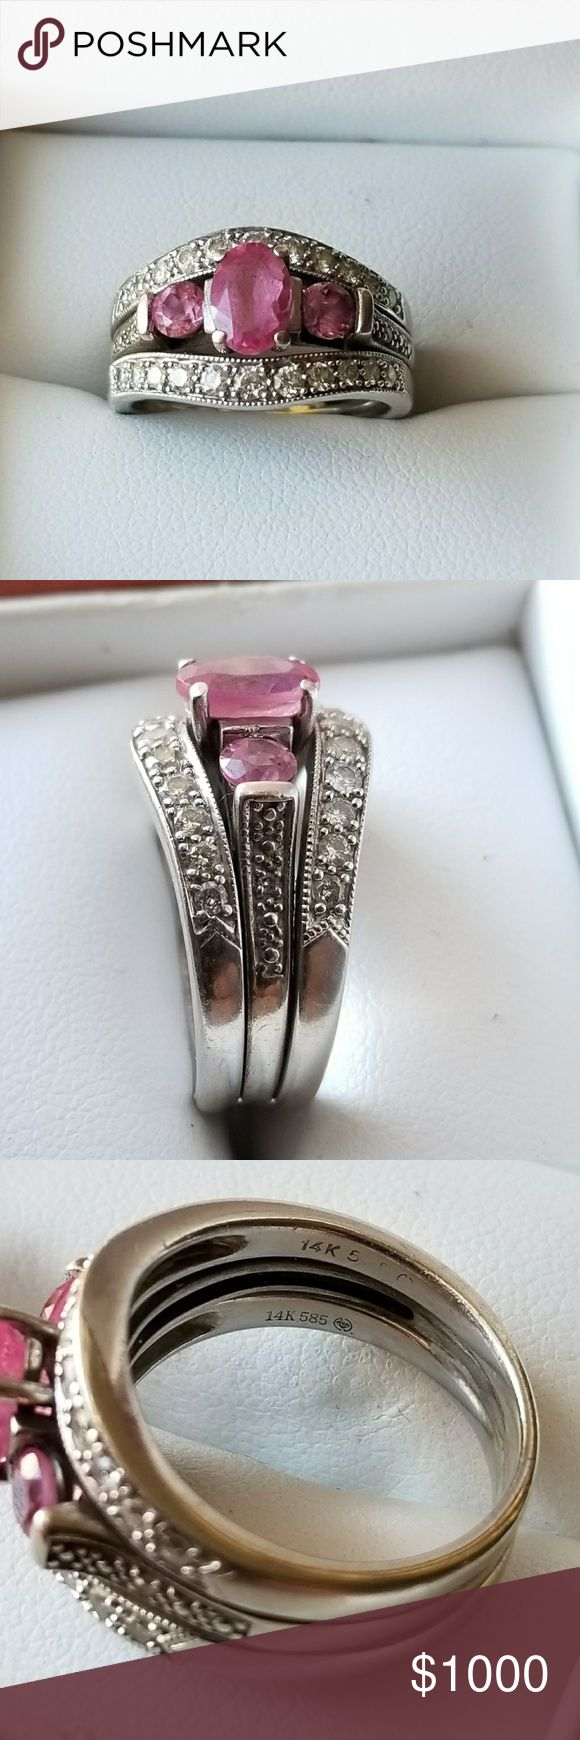 Women's wedding ring set Selling a very beautiful wedding ring set, set includes 3 rings that are soldered together. 14k white gold, pink sapphire center ring with 1/4 ct diamonds in each wedding band. Rings are a size 6 and have always been cleaned and inspected. Well over $2000 into this set. Jewelry Rings #jewelrydiamond #diamondsclean #weddingring